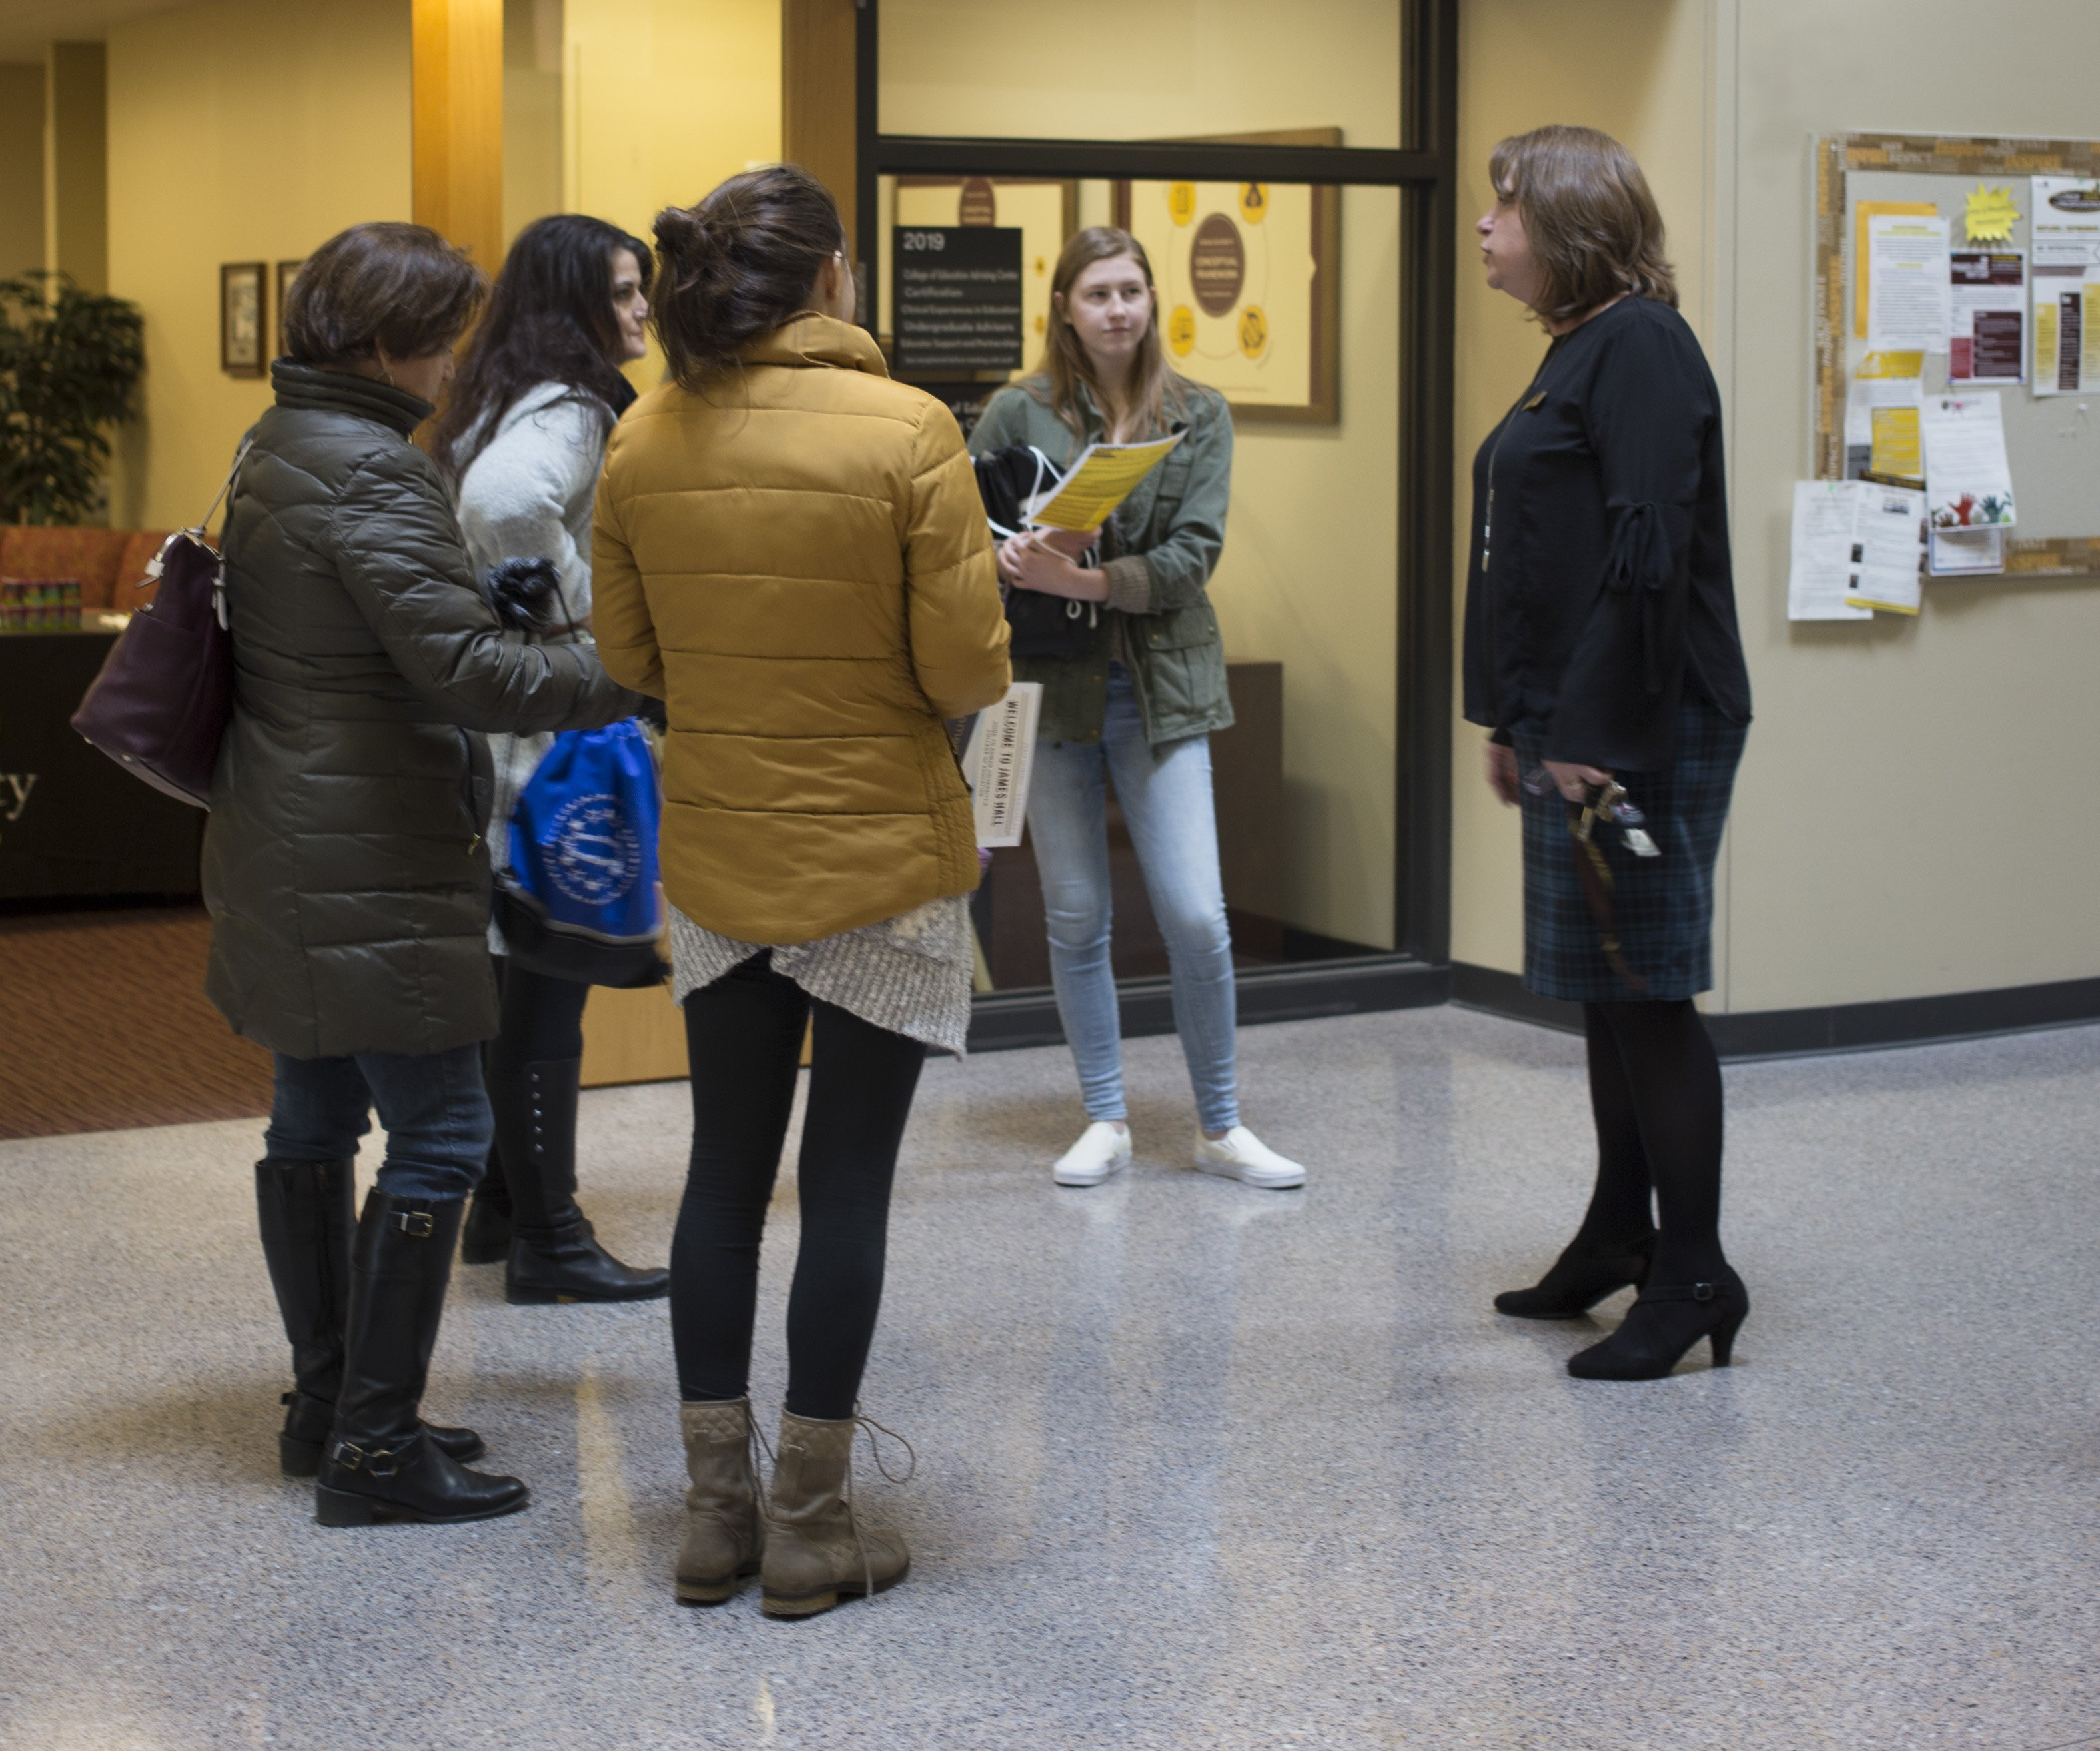 Maureen Scott, the Coordinator of the College of Education, talks with potential Education majors in James Hall at Rowan University.